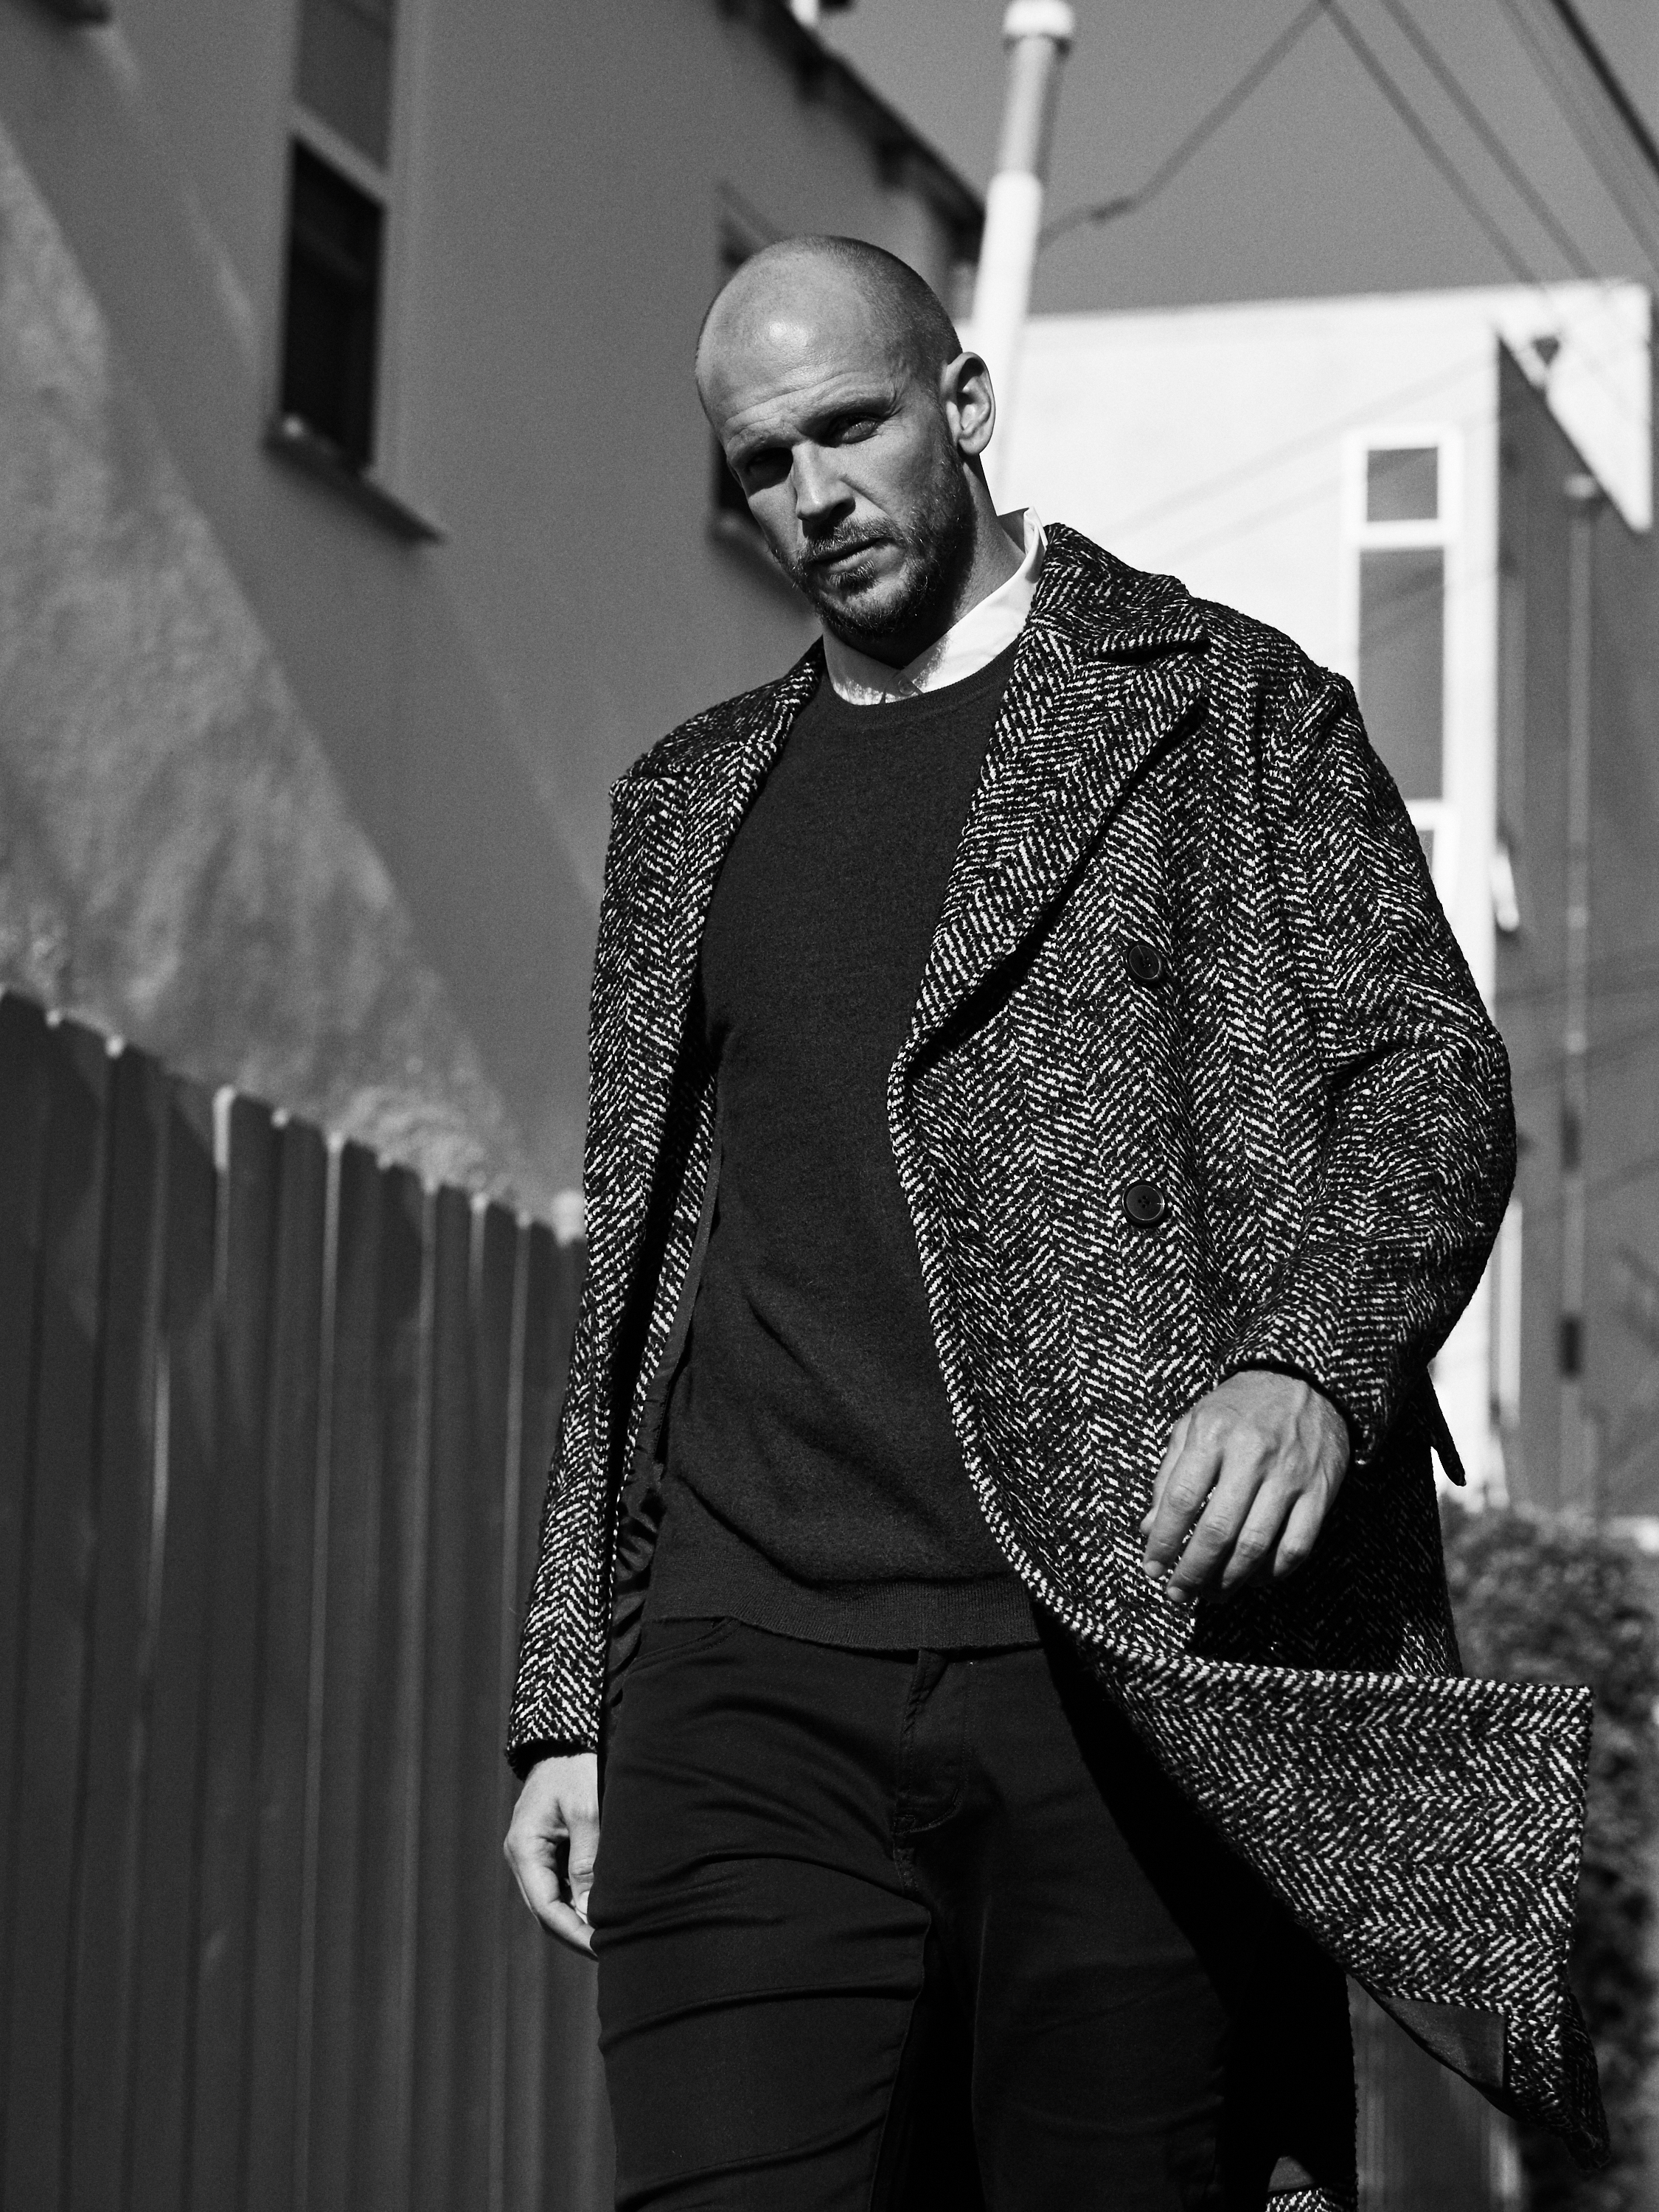 Coat by   THEORY  ; Shirt by   JOHN VARVATOS    |    Bloomingdales Beverly Center  ; Sweater by   VINCE    |    Bloomingdales Beverly Center  ; Denim by   RAG & BONE